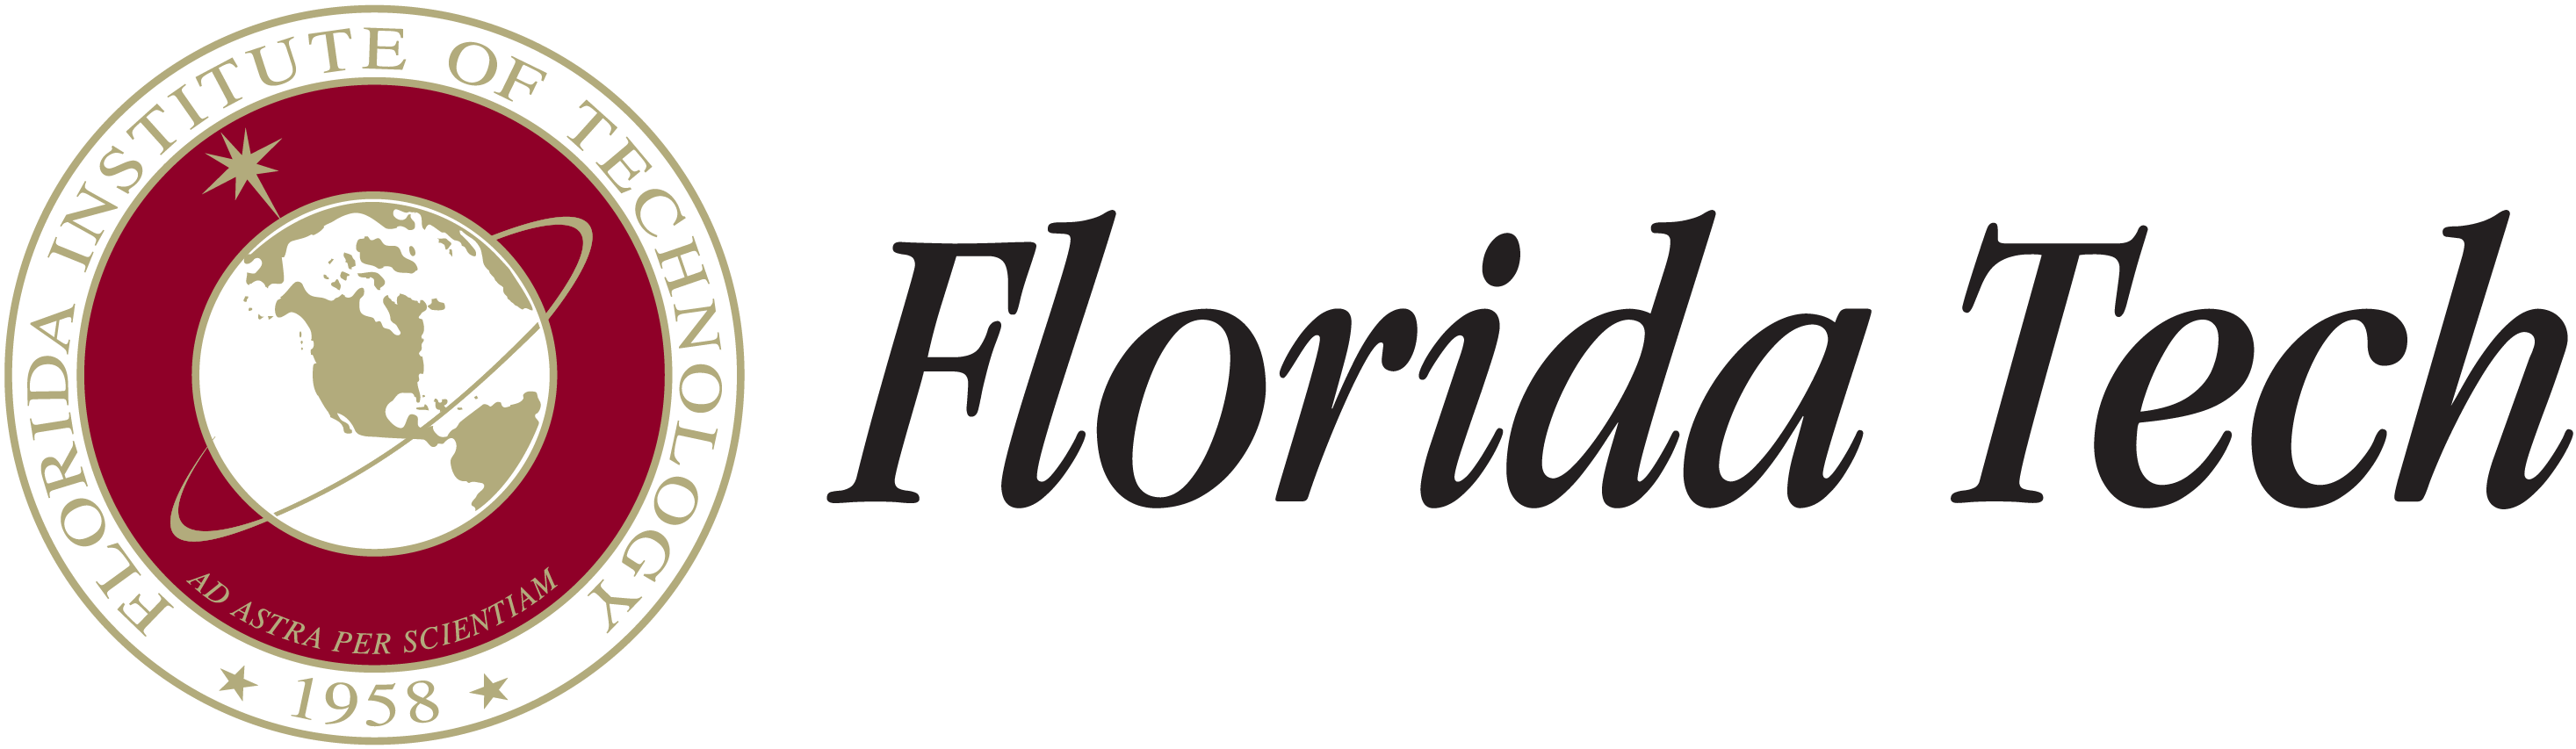 Florida Tech, Florida Tech Online discount on tuition,